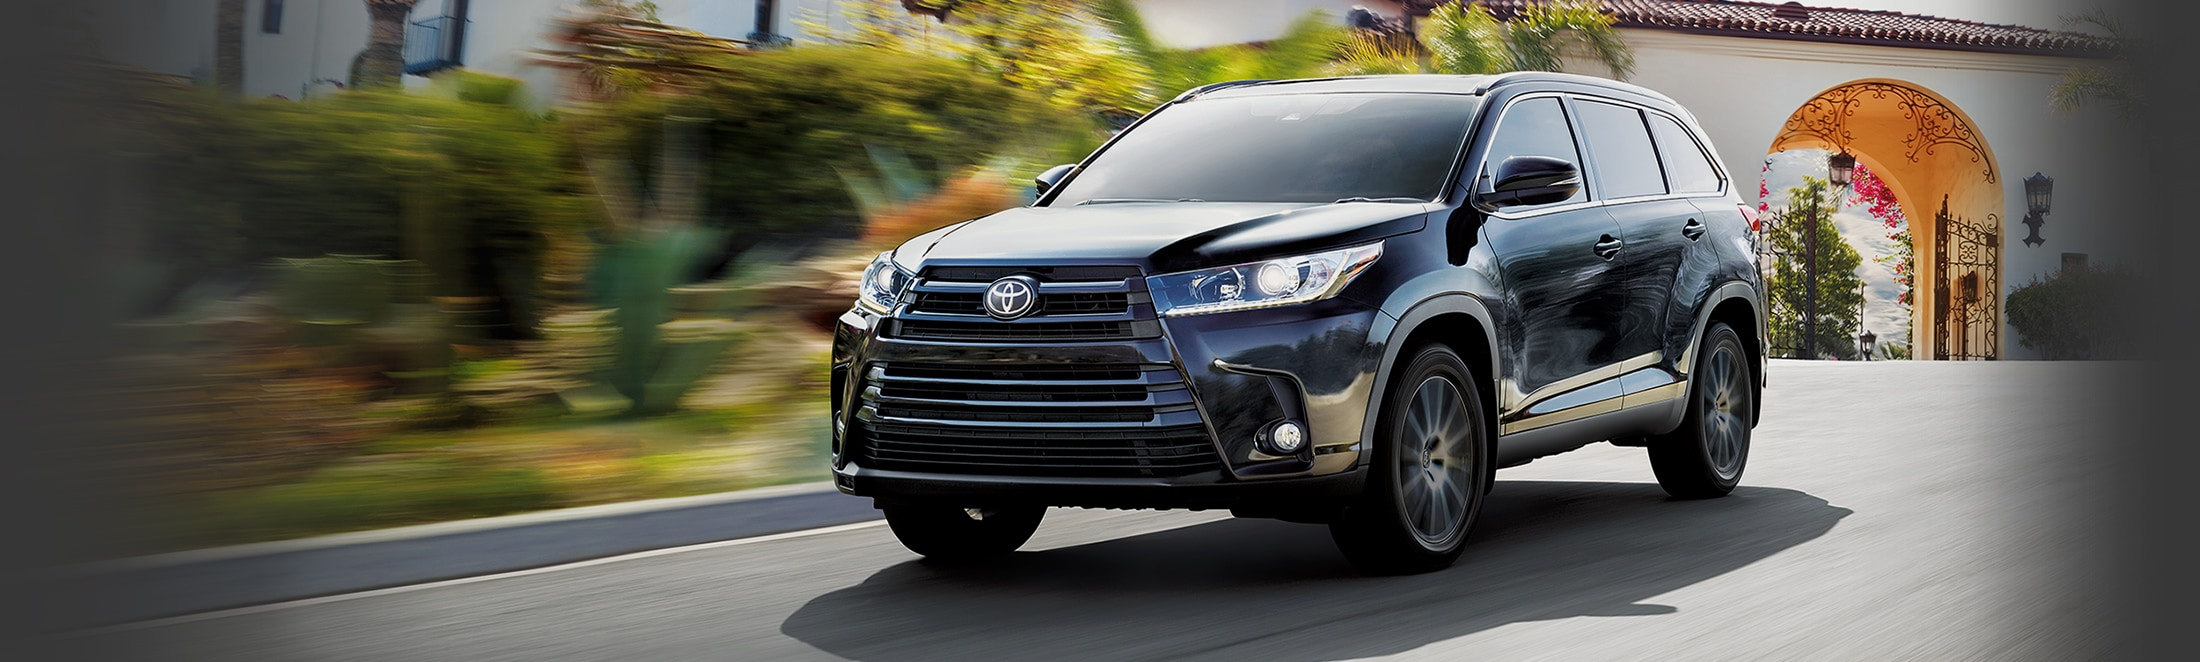 New Toyota Highlander | Woodbridge Toyota